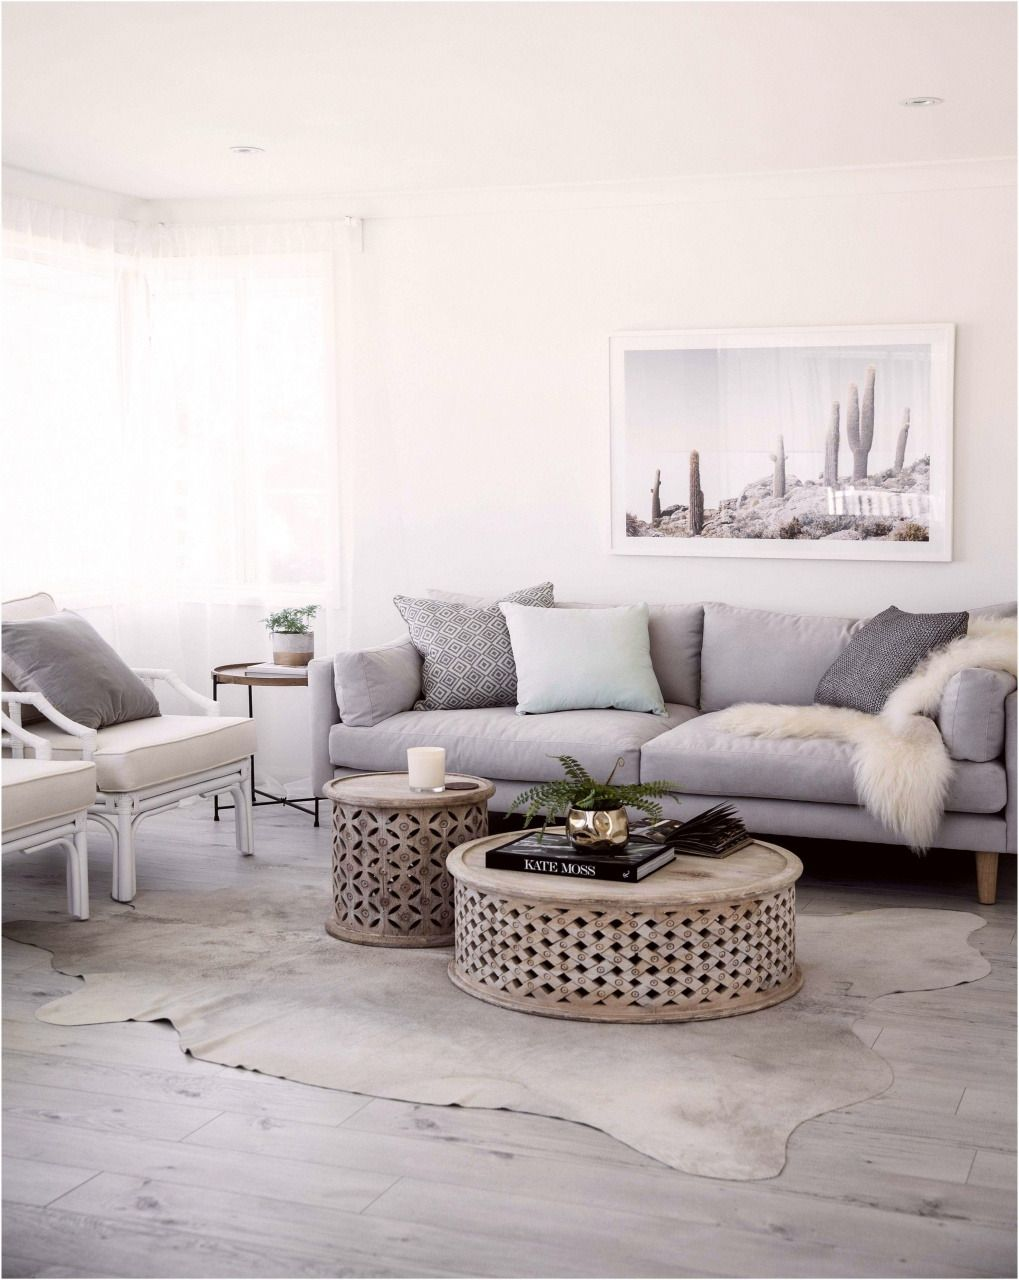 Nice Home Design Pictures 2021 in 2020 | White living room ...